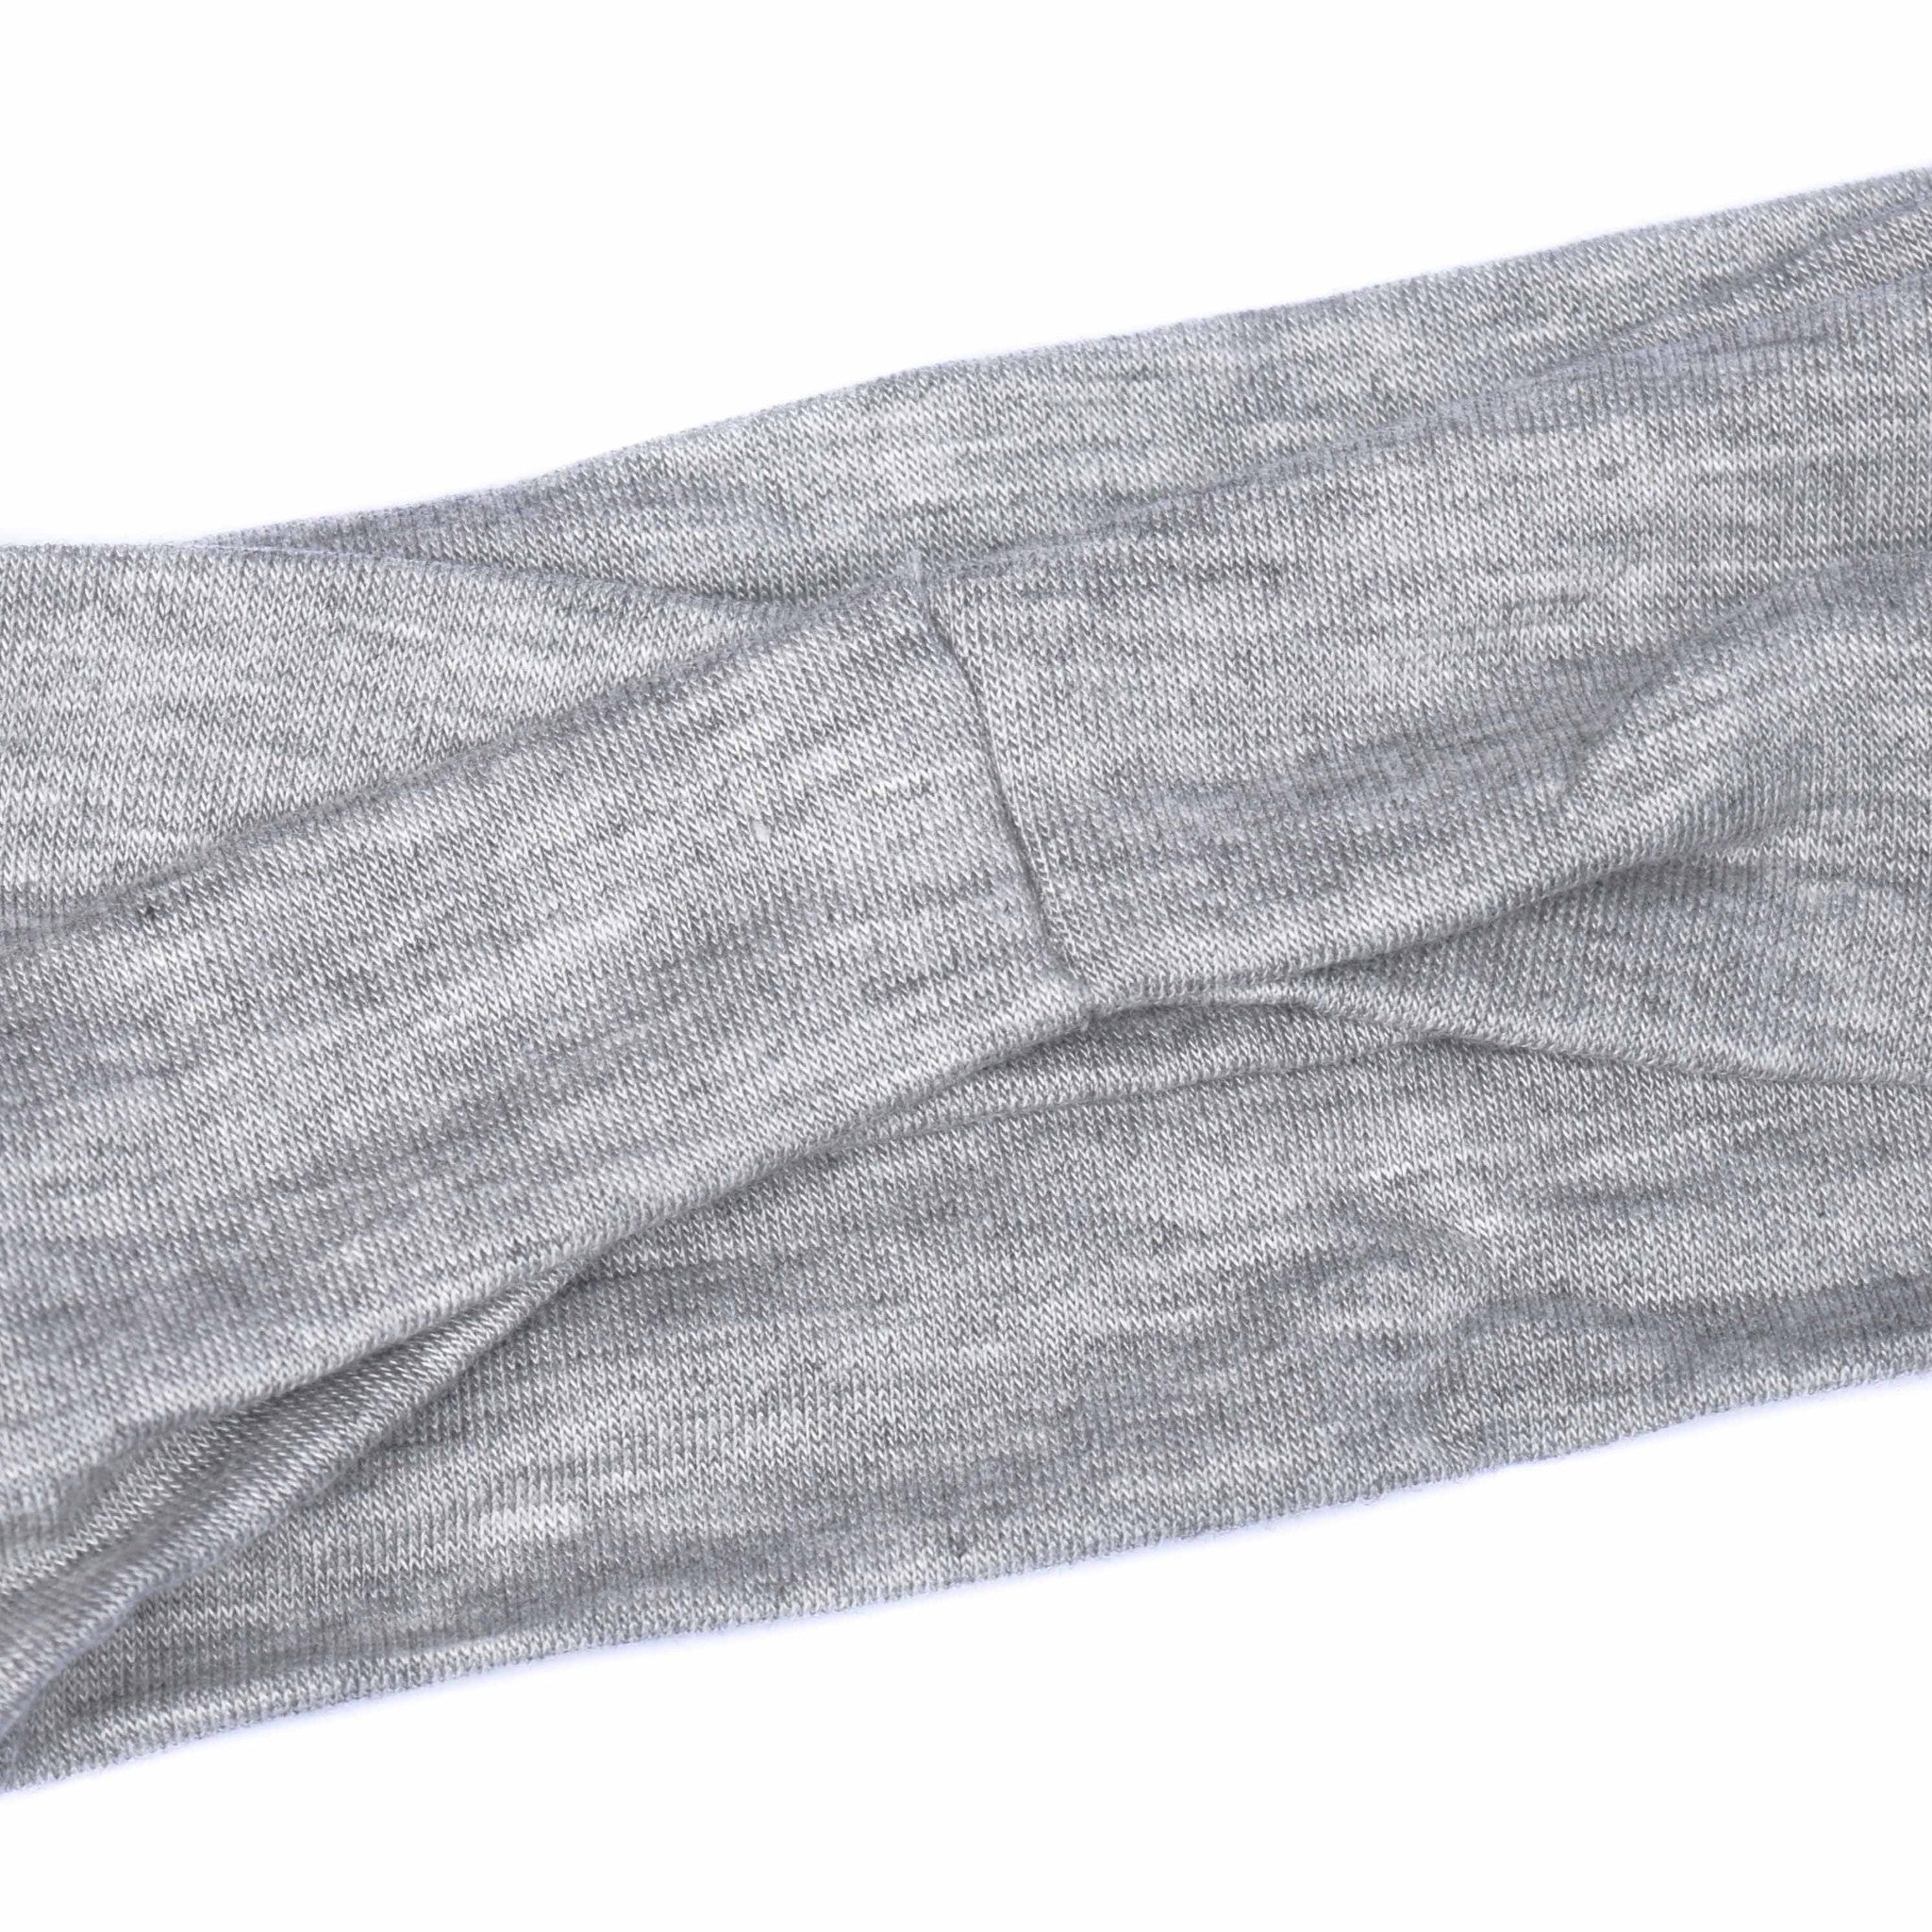 GREY (LIGHT)- Wide Headband